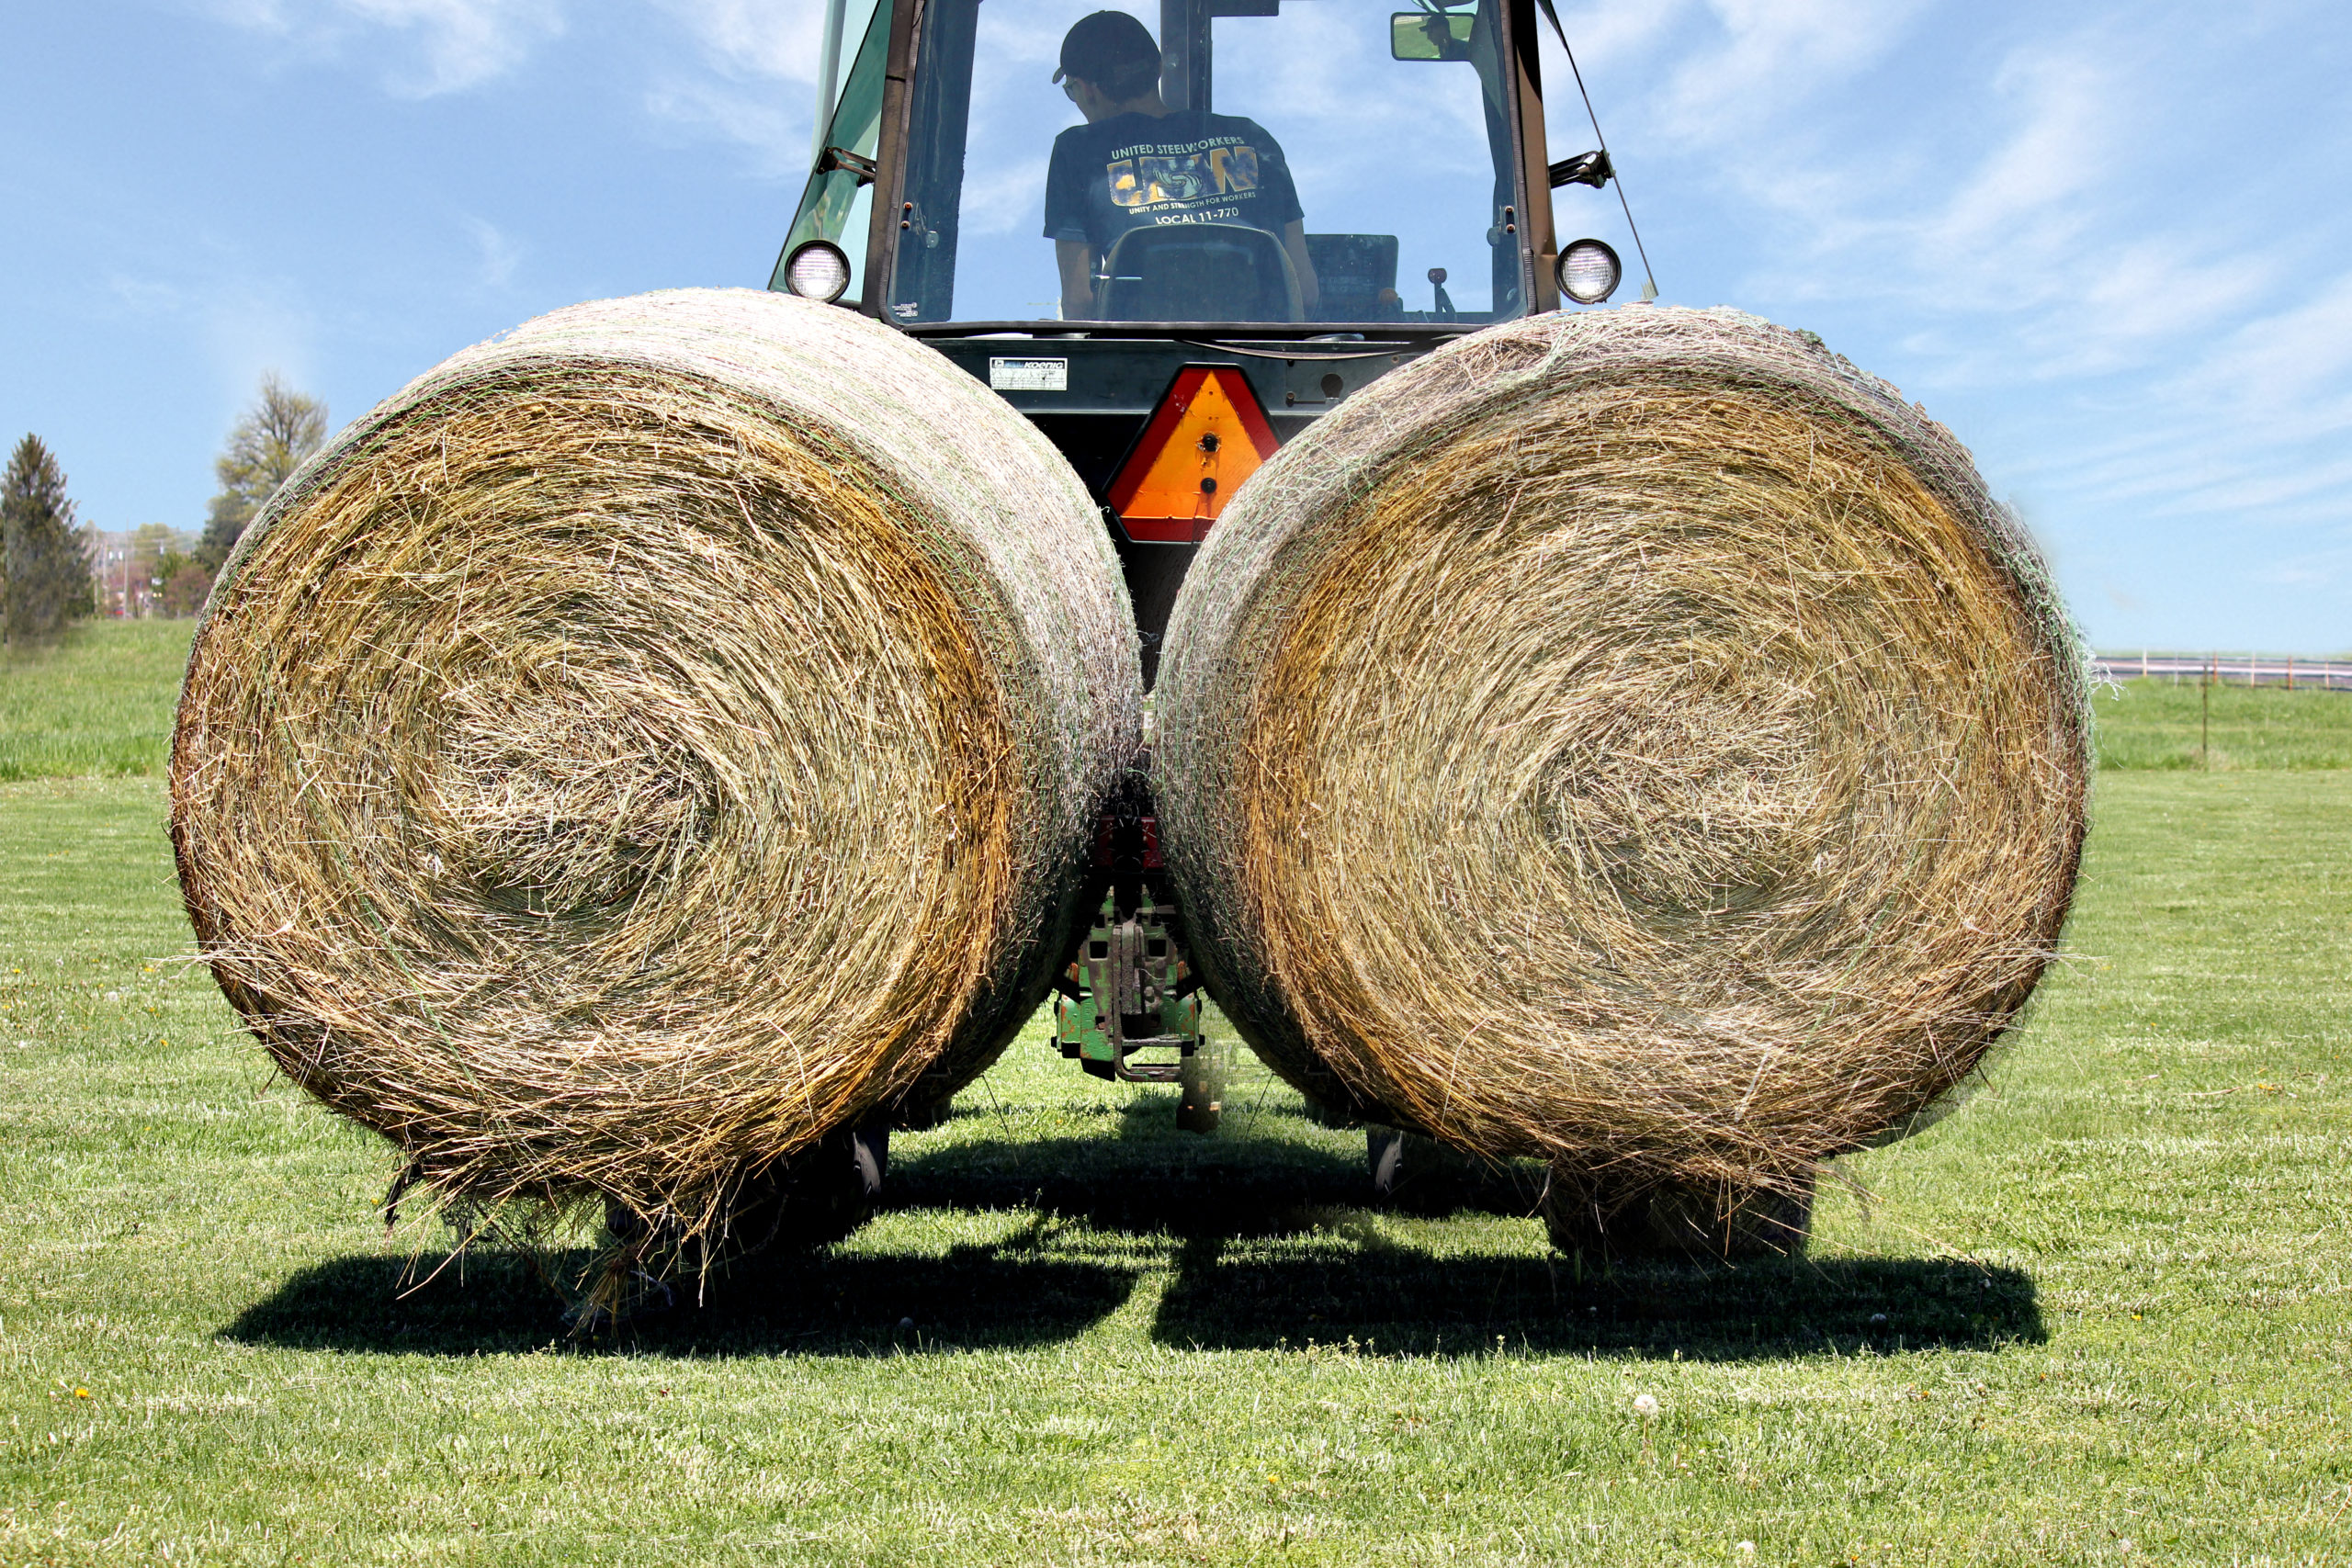 3-Point Two-Bale Mover lifting two large bales